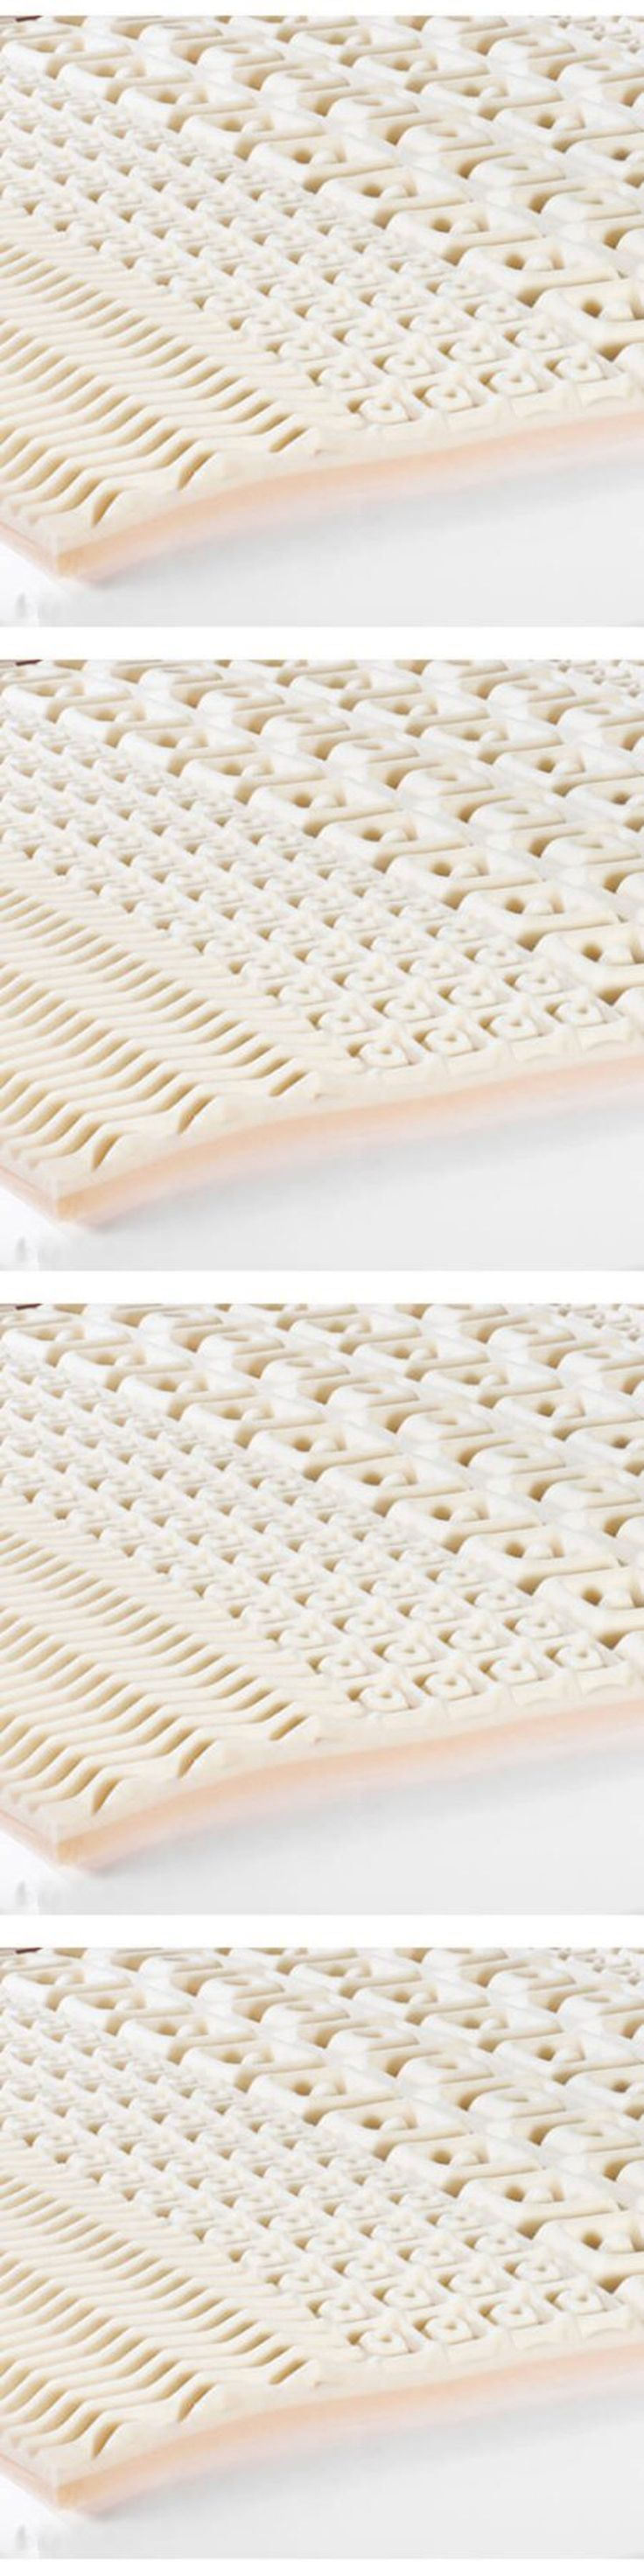 Mattress Pads and Feather Beds 175751: 2 Full Size Foam Mattress Pad  Convoluted Bed Topper